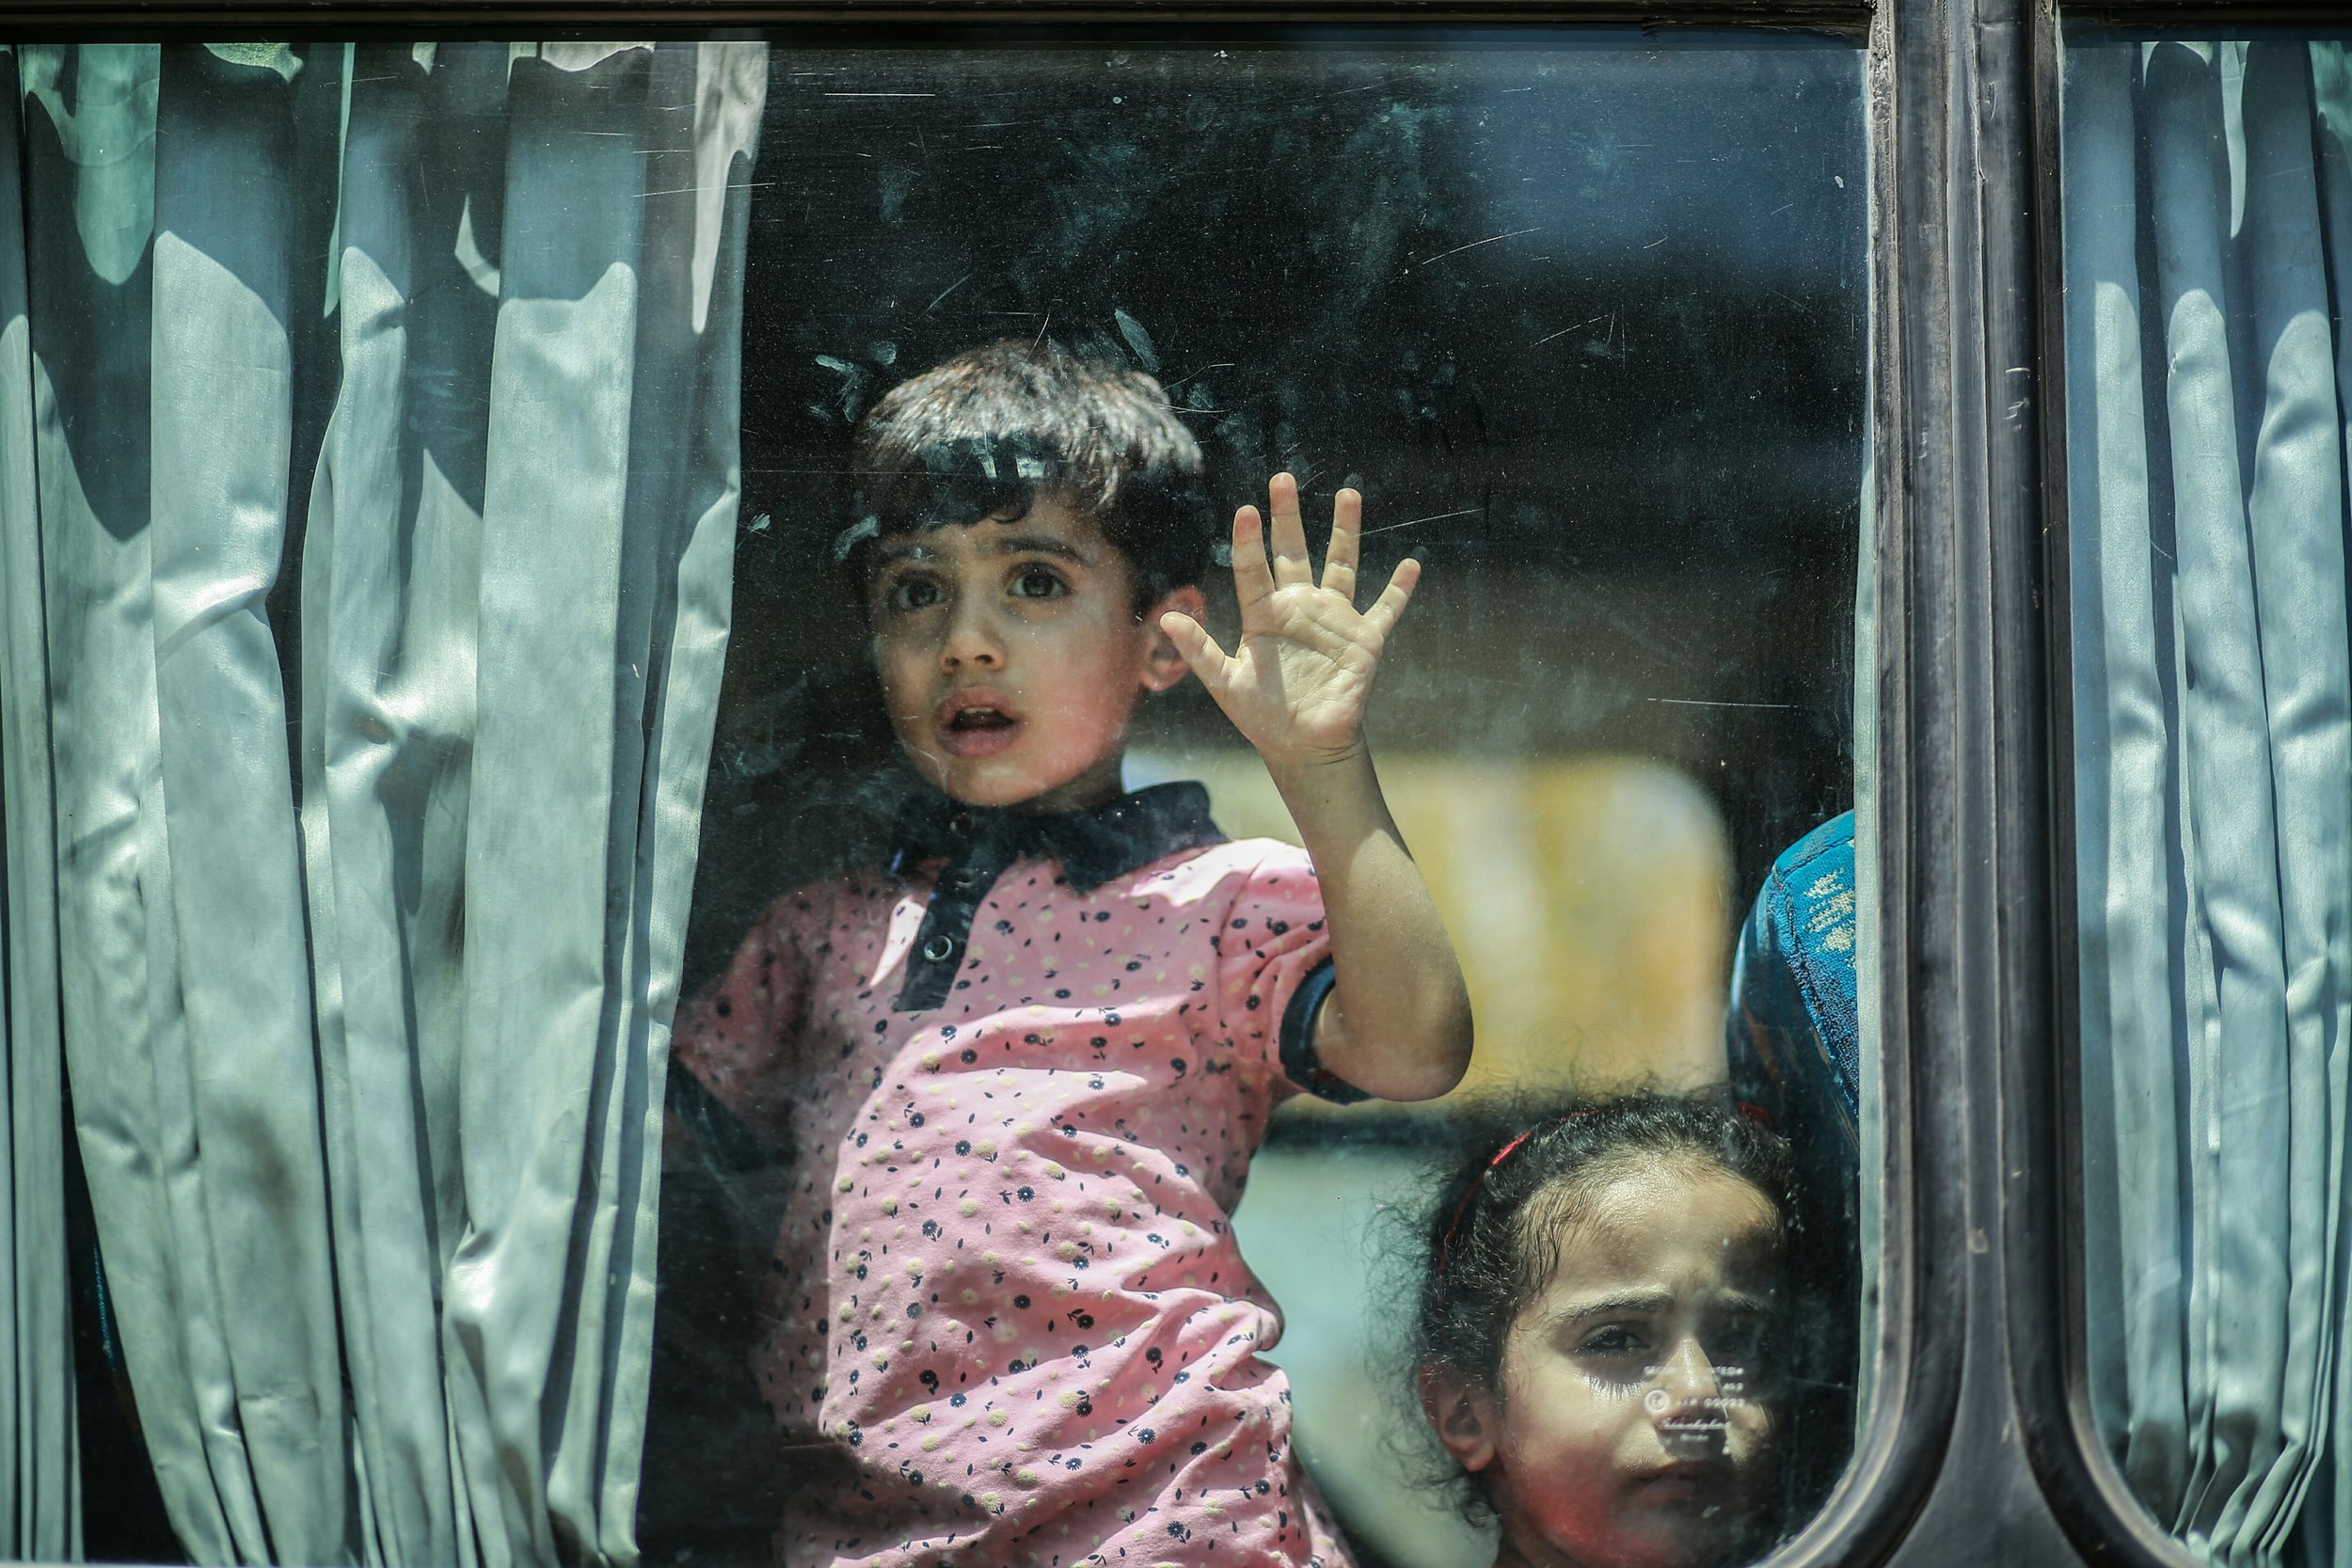 A boy looks out of the window in fear, on the way to the Egyptian border. (Photo credit: Hosam Salim via We Are Not Numbers)